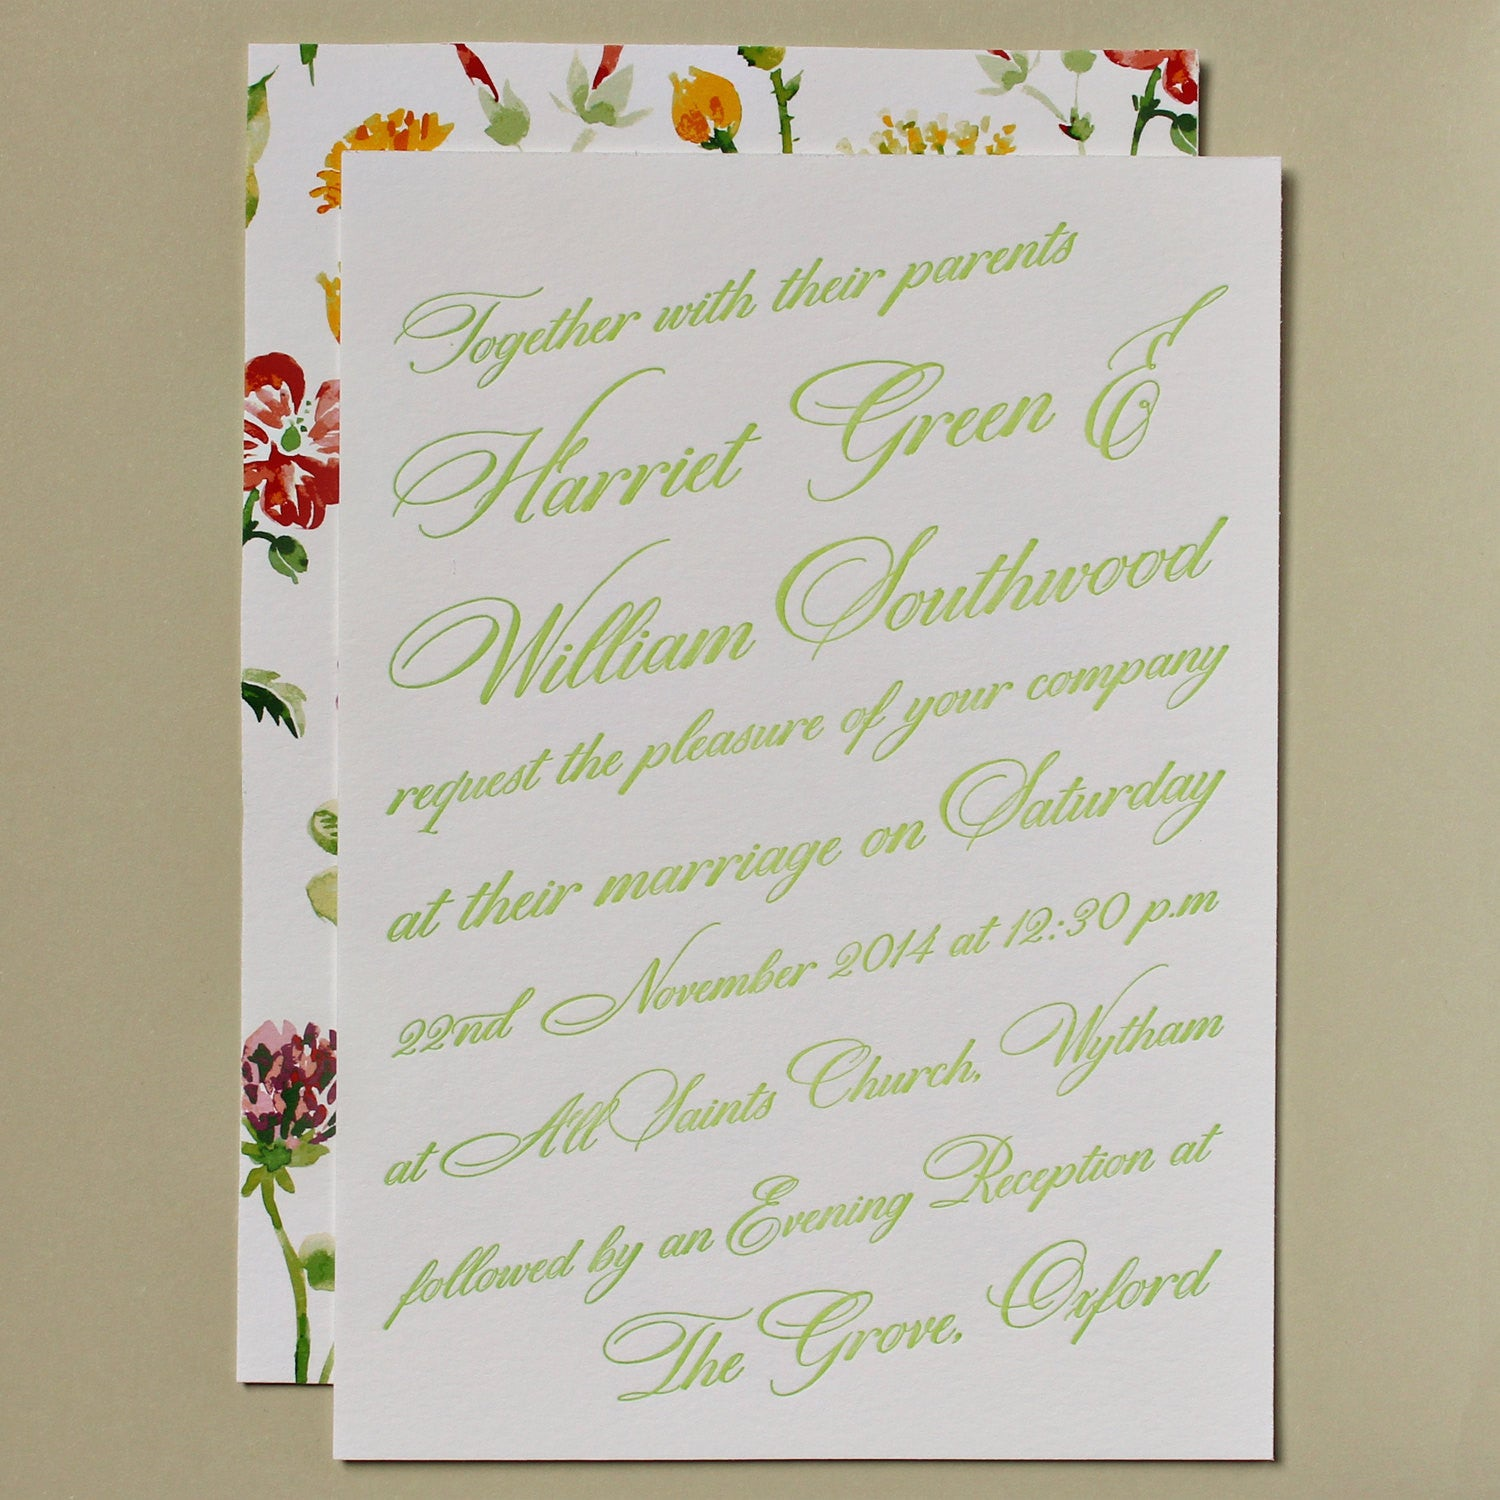 Letterpress Wedding Invitations with Watercolor flowers - Sample ...